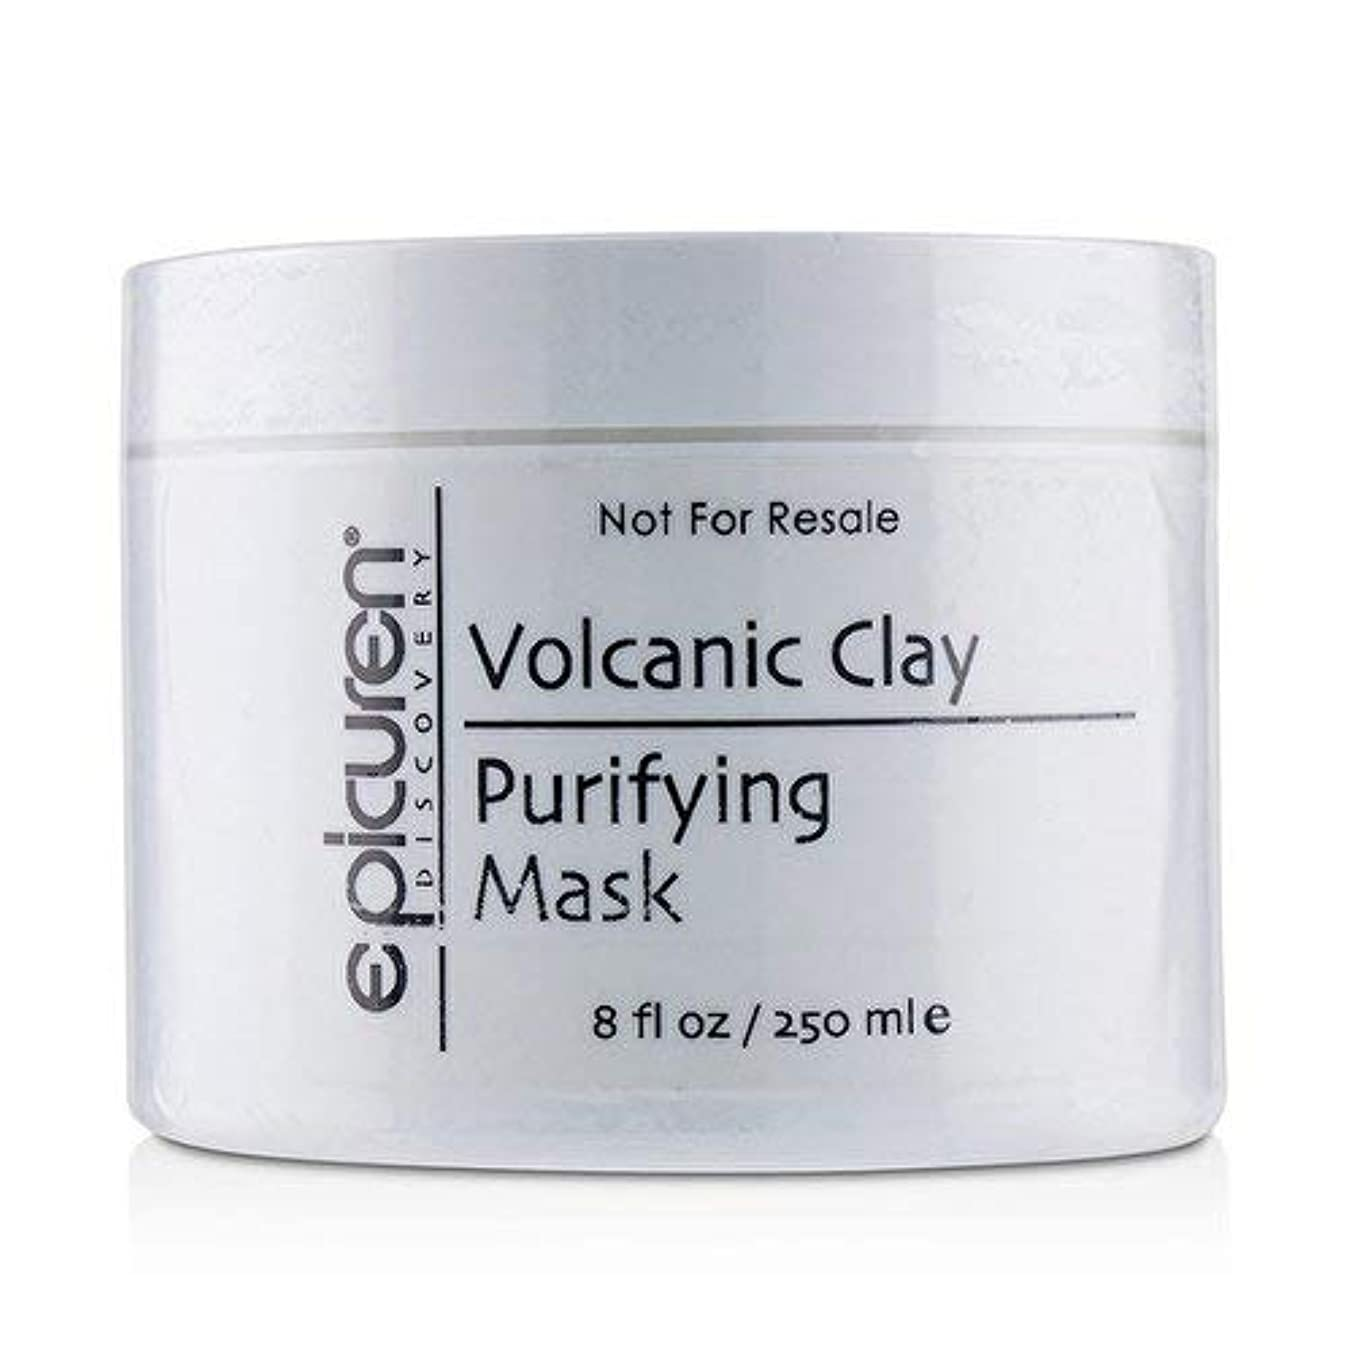 Epicuren Volcanic Clay Purifying Mask - For Normal, Oily & Congested Skin Types 250ml/8oz並行輸入品